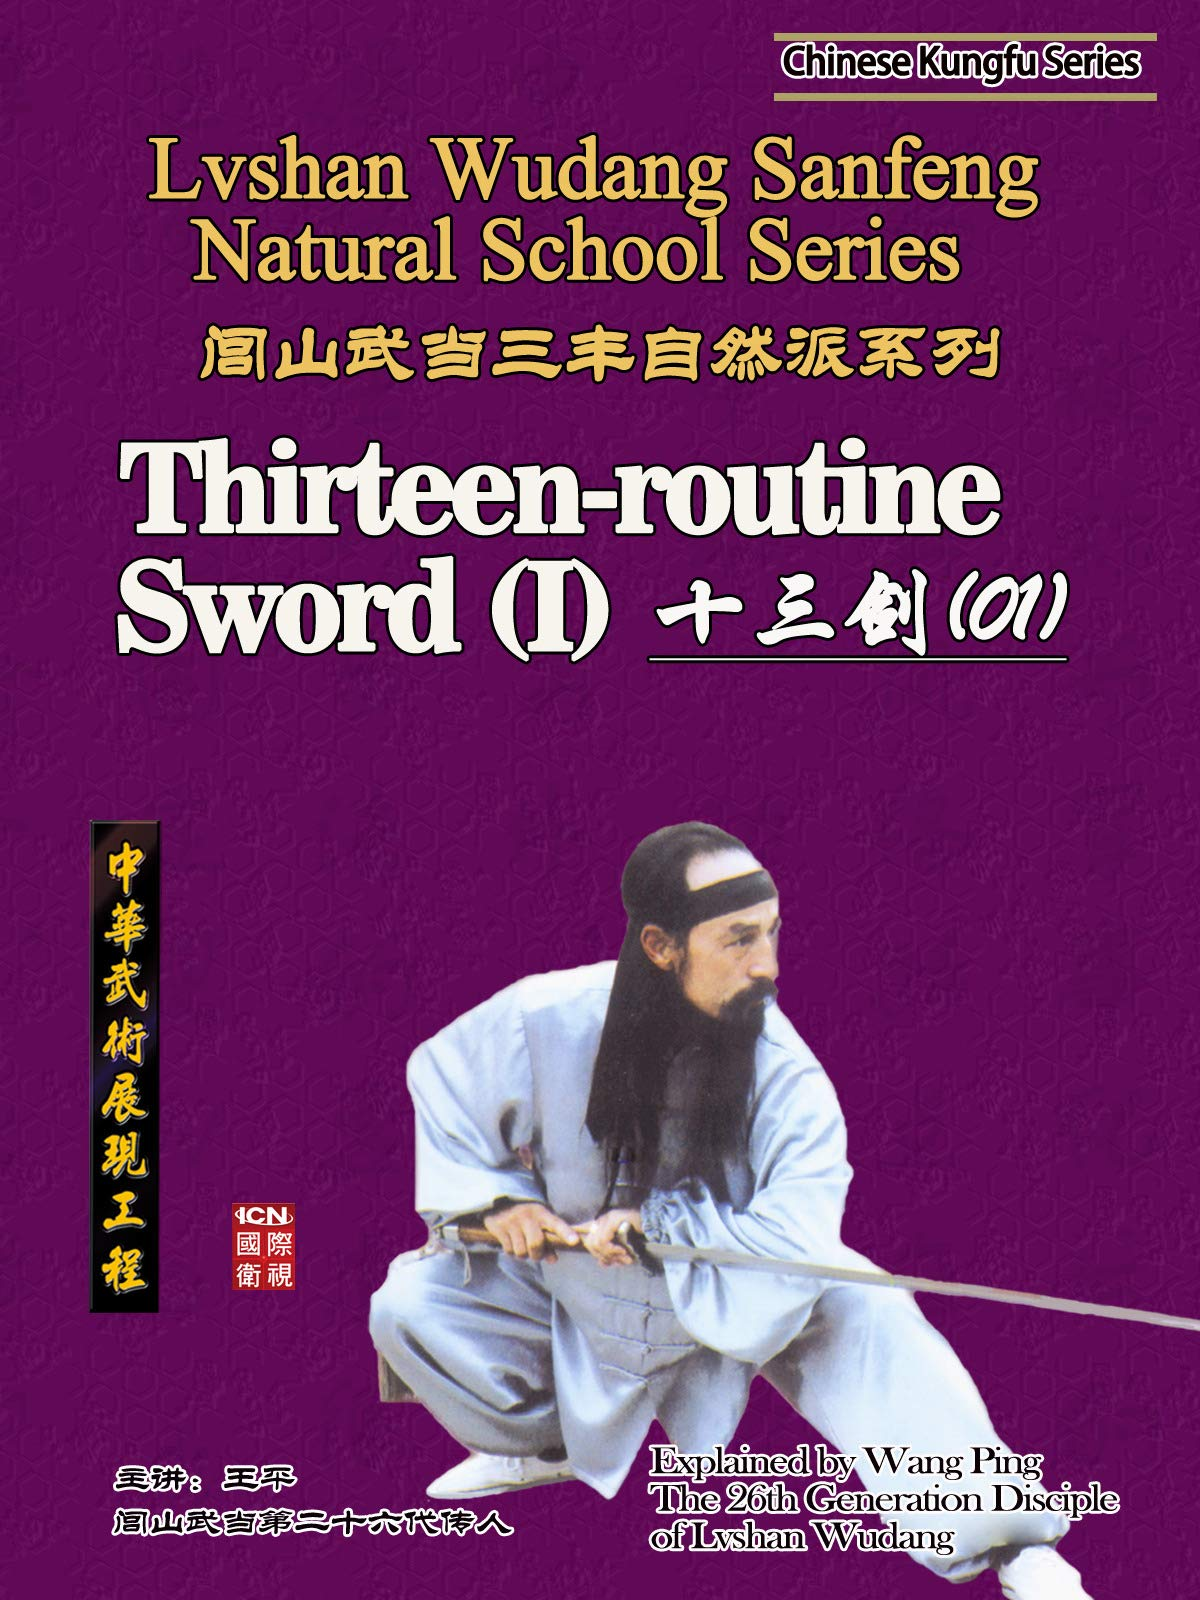 Lvshan Wudang Sanfeng Natural School Series-Thirteen-routine Sword (I) (Explained by Wang Ping) on Amazon Prime Video UK